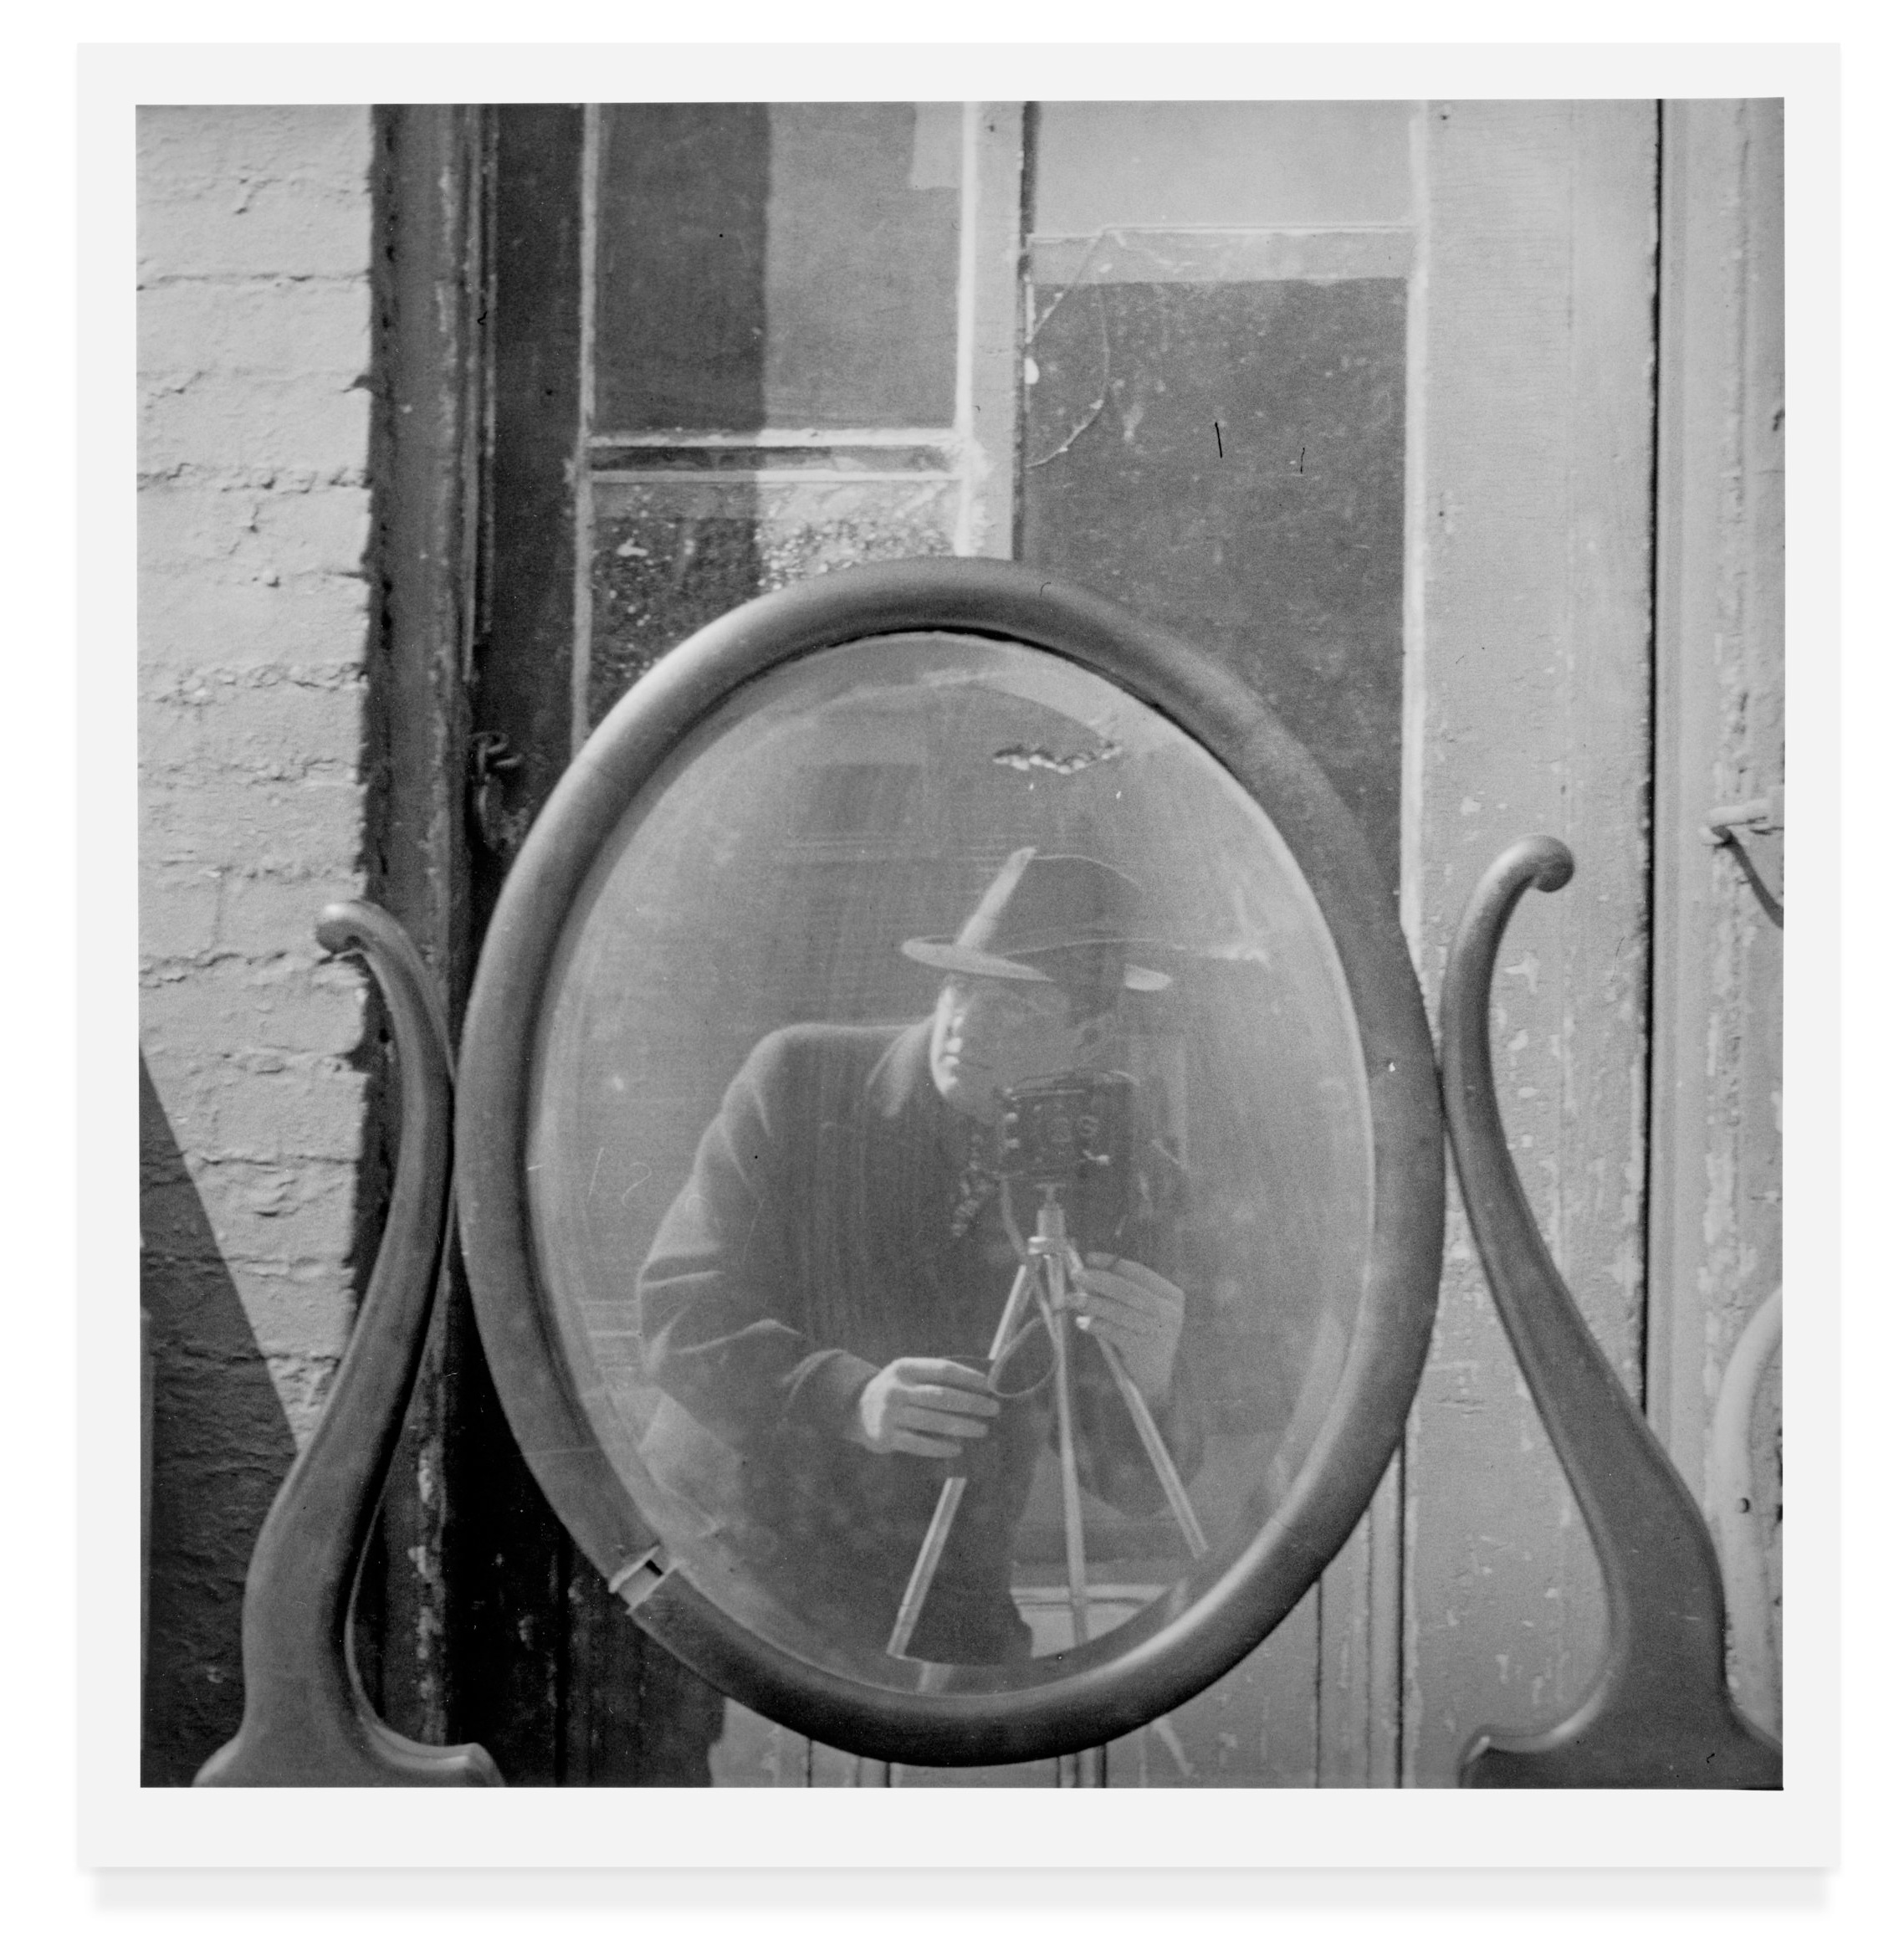 """Self Portrait from """"Seeing Arnold Newman"""" published by Radius Books © 2018"""